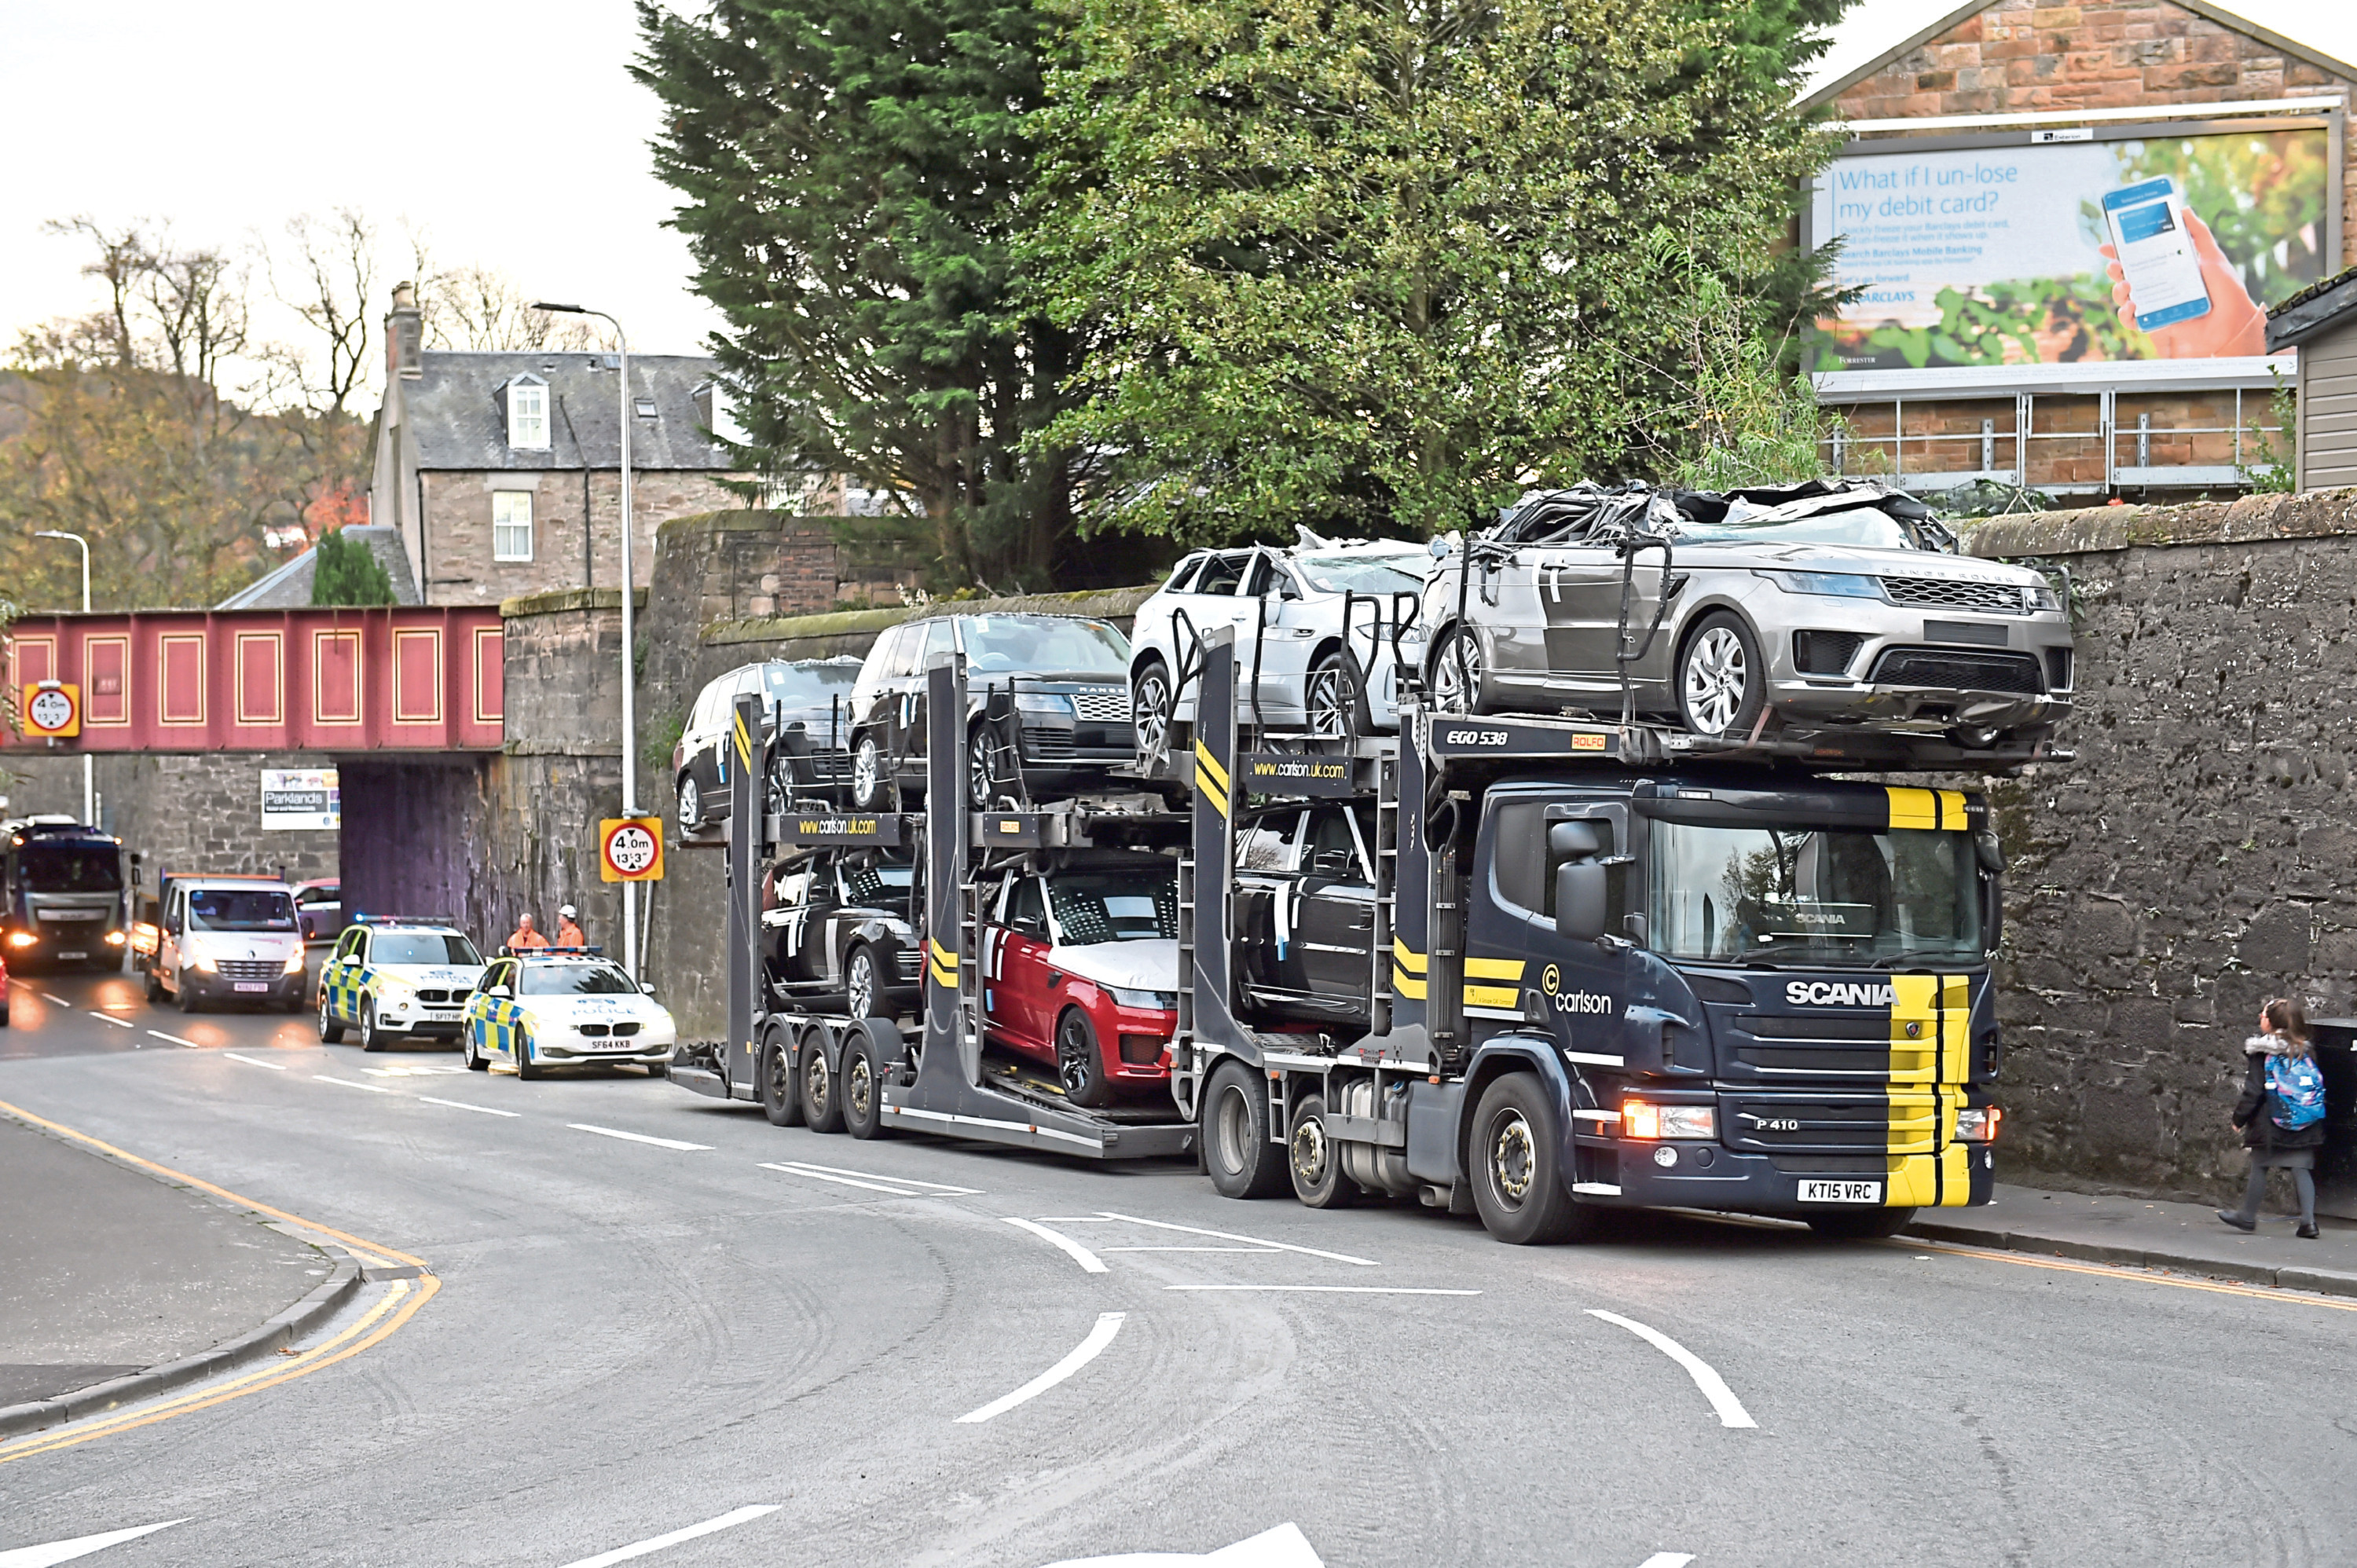 The car transporter with the damaged vehicles above the driver's cab